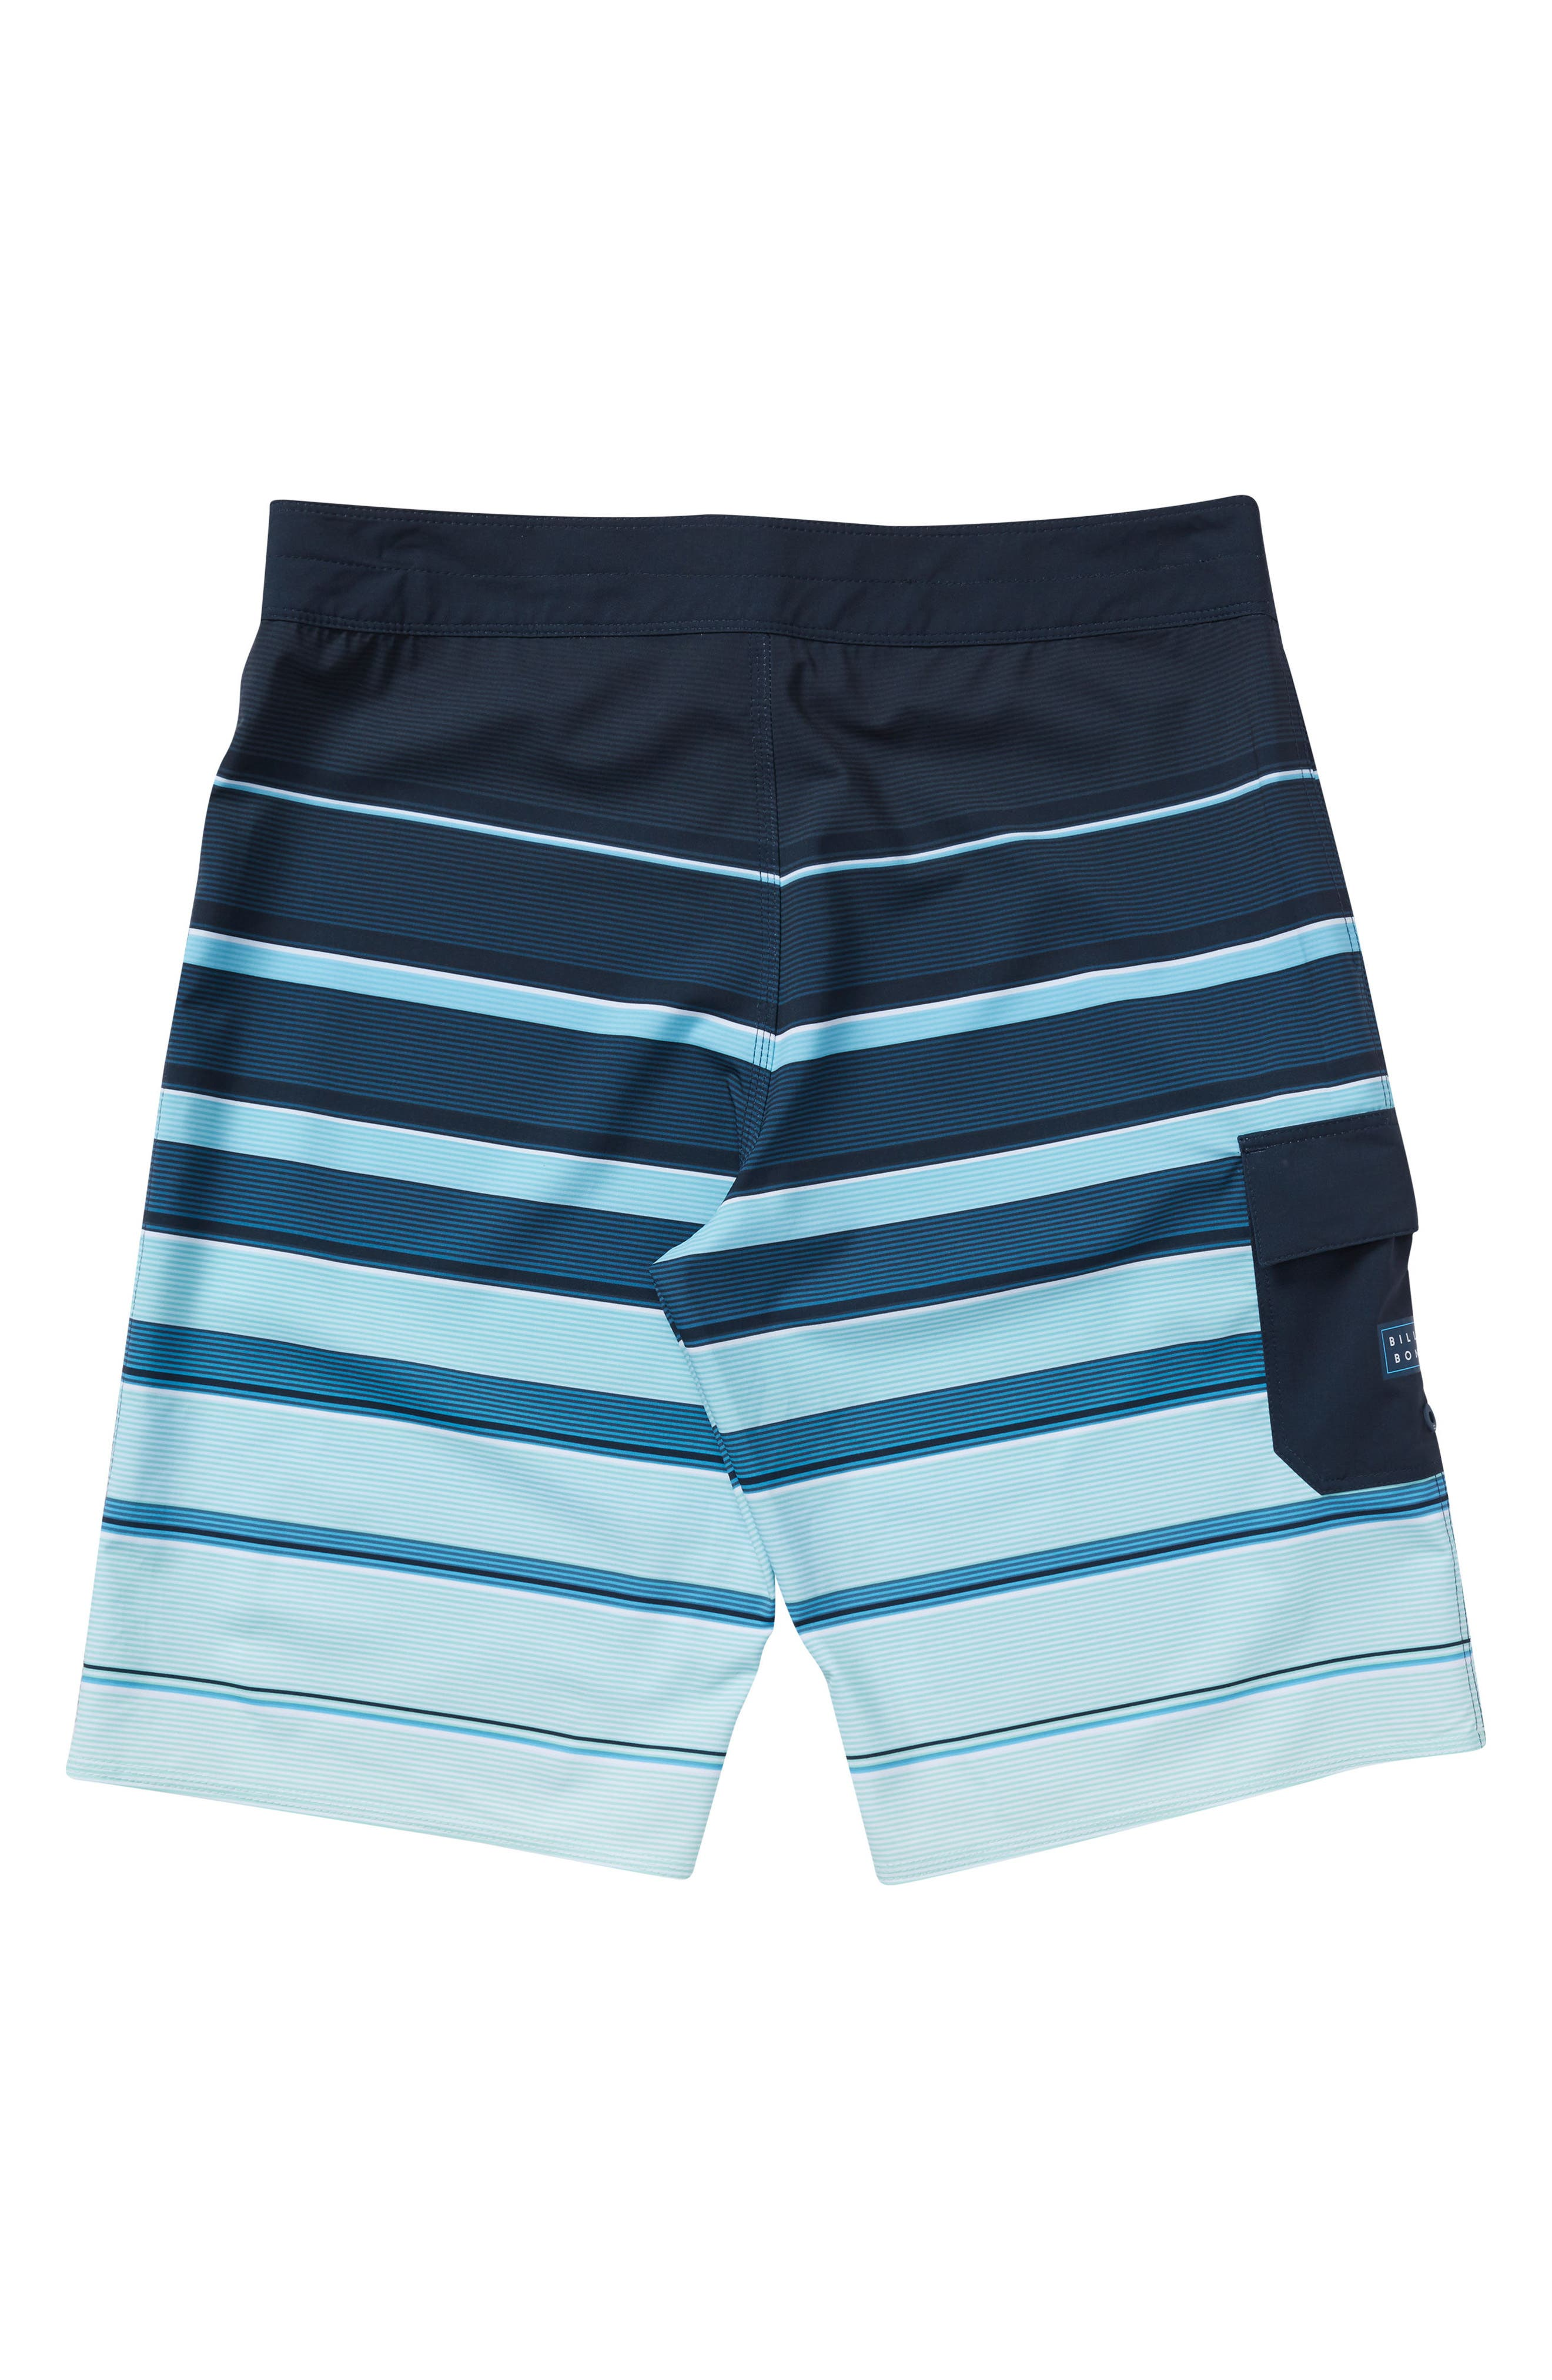 All Day X Stripe Board Shorts,                             Alternate thumbnail 2, color,                             Green